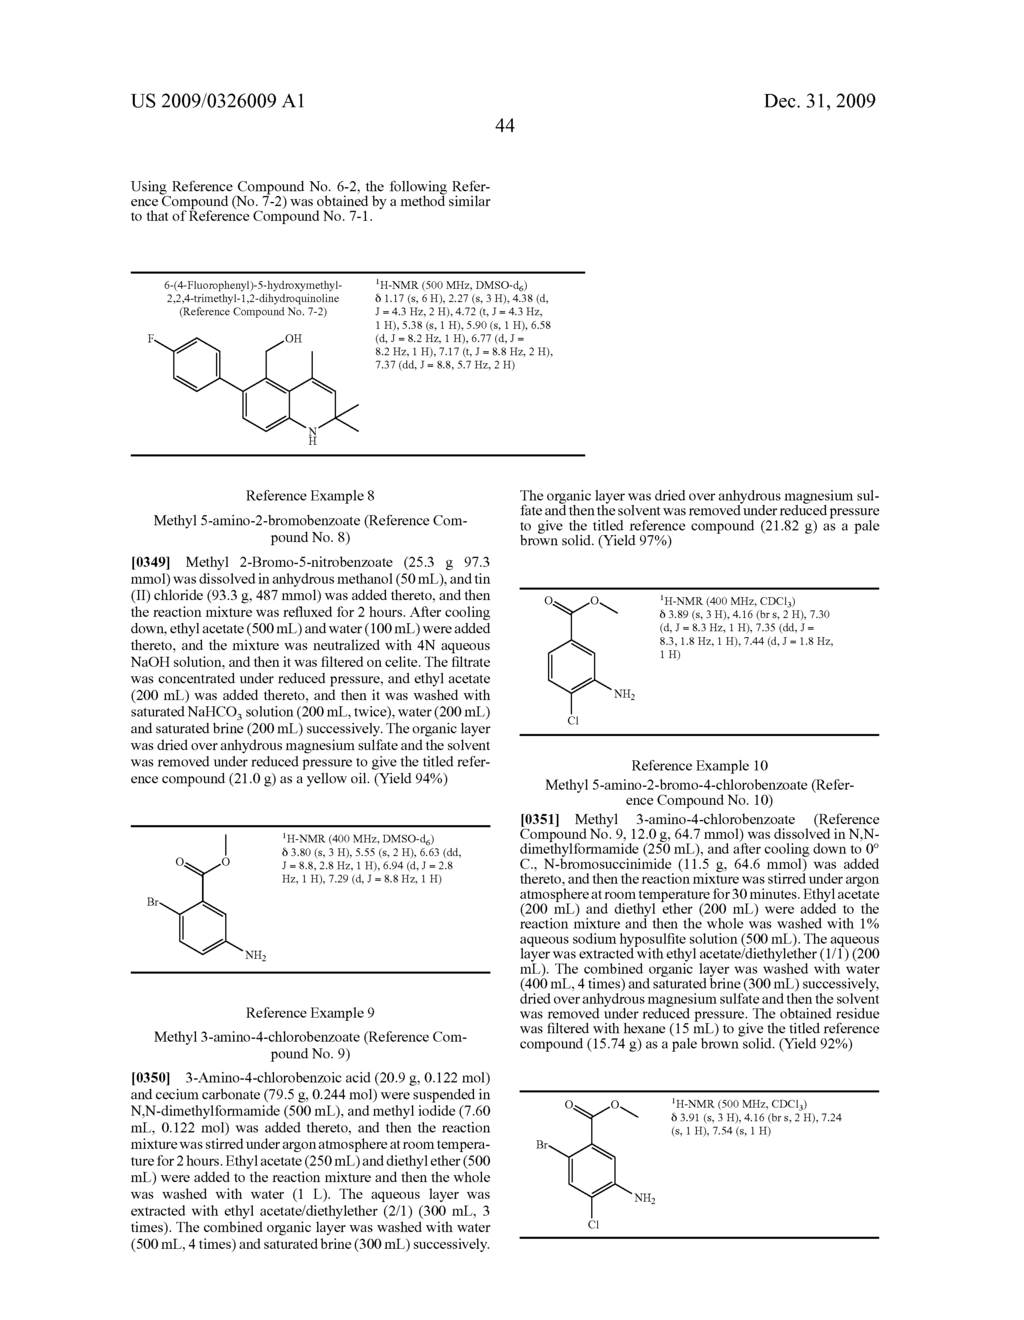 Novel 1-2-Dihydroquinoline Derivative Having Glucocorticoid Receptor Binding Activity - diagram, schematic, and image 45